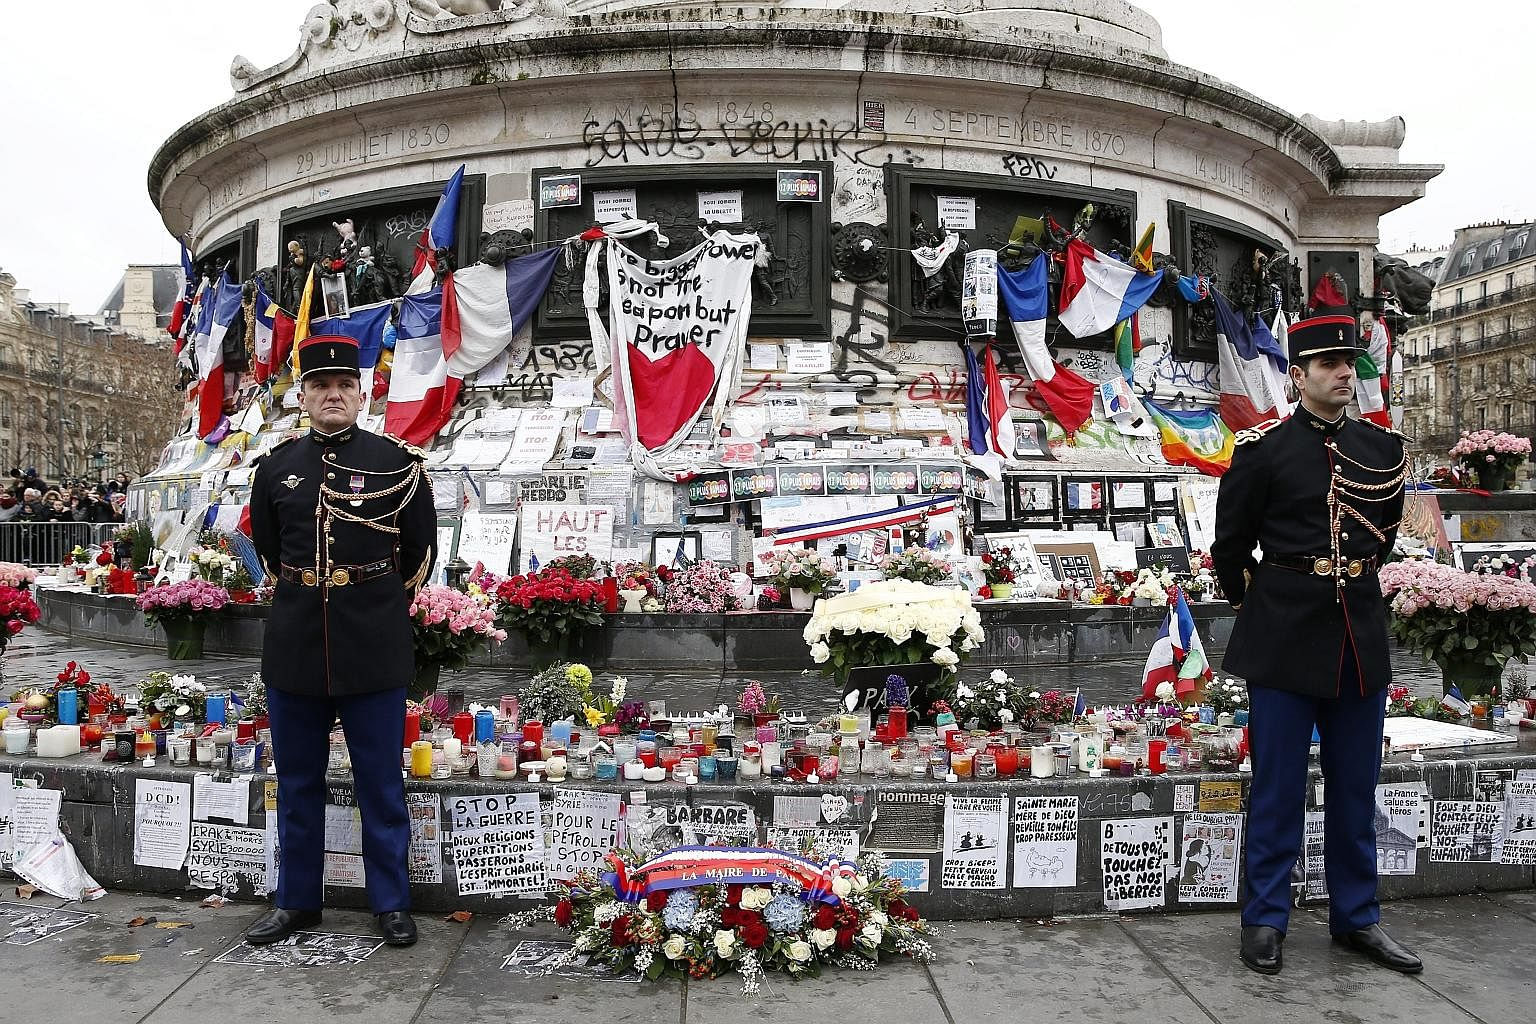 Tributes at a ceremony to remember the victims of the terrorist attacks in Paris last January, at Republique Square, earlier this month.